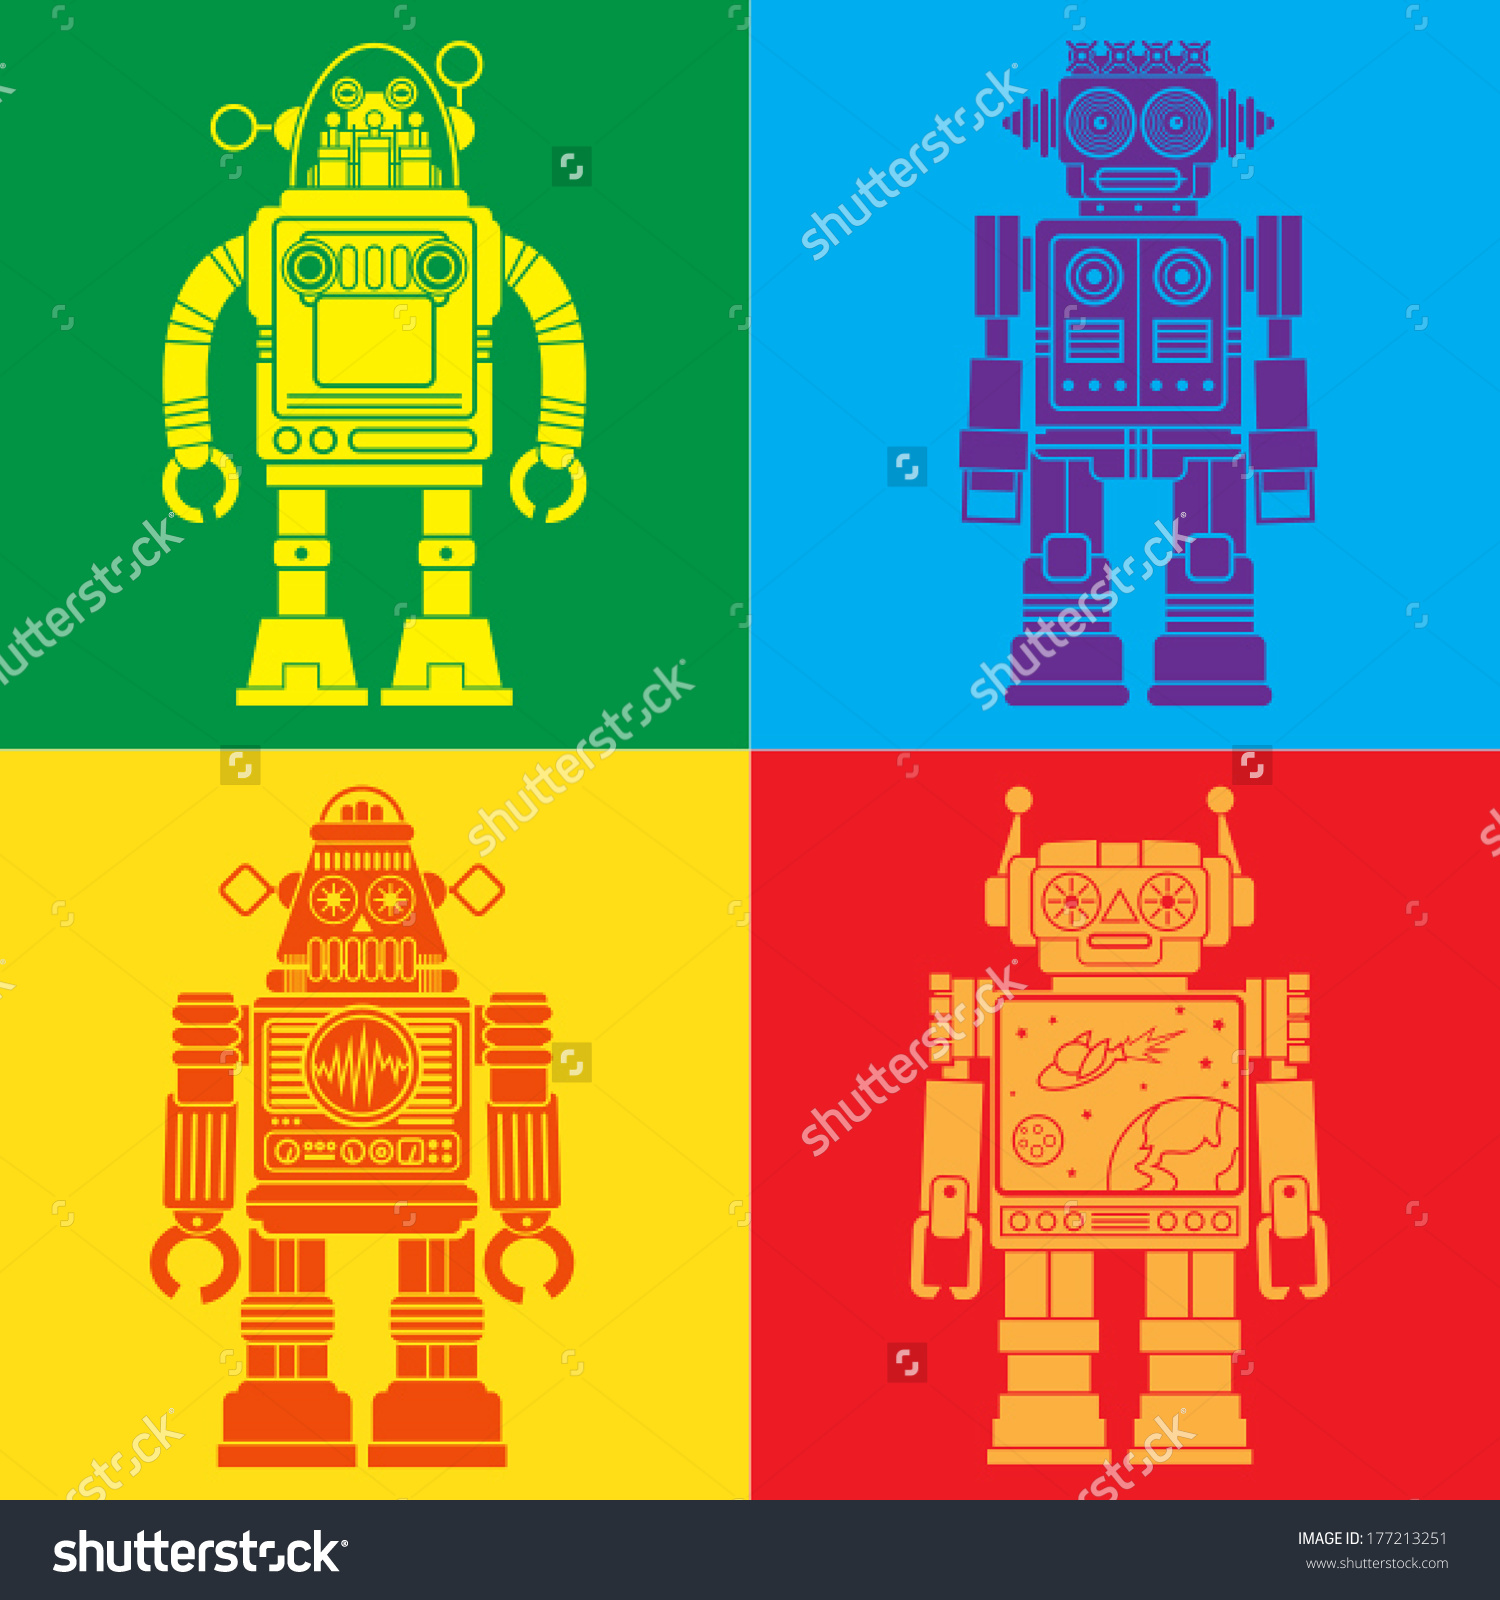 Vintage Tin Toy Robots Pop Art Stock Vector 177213251.